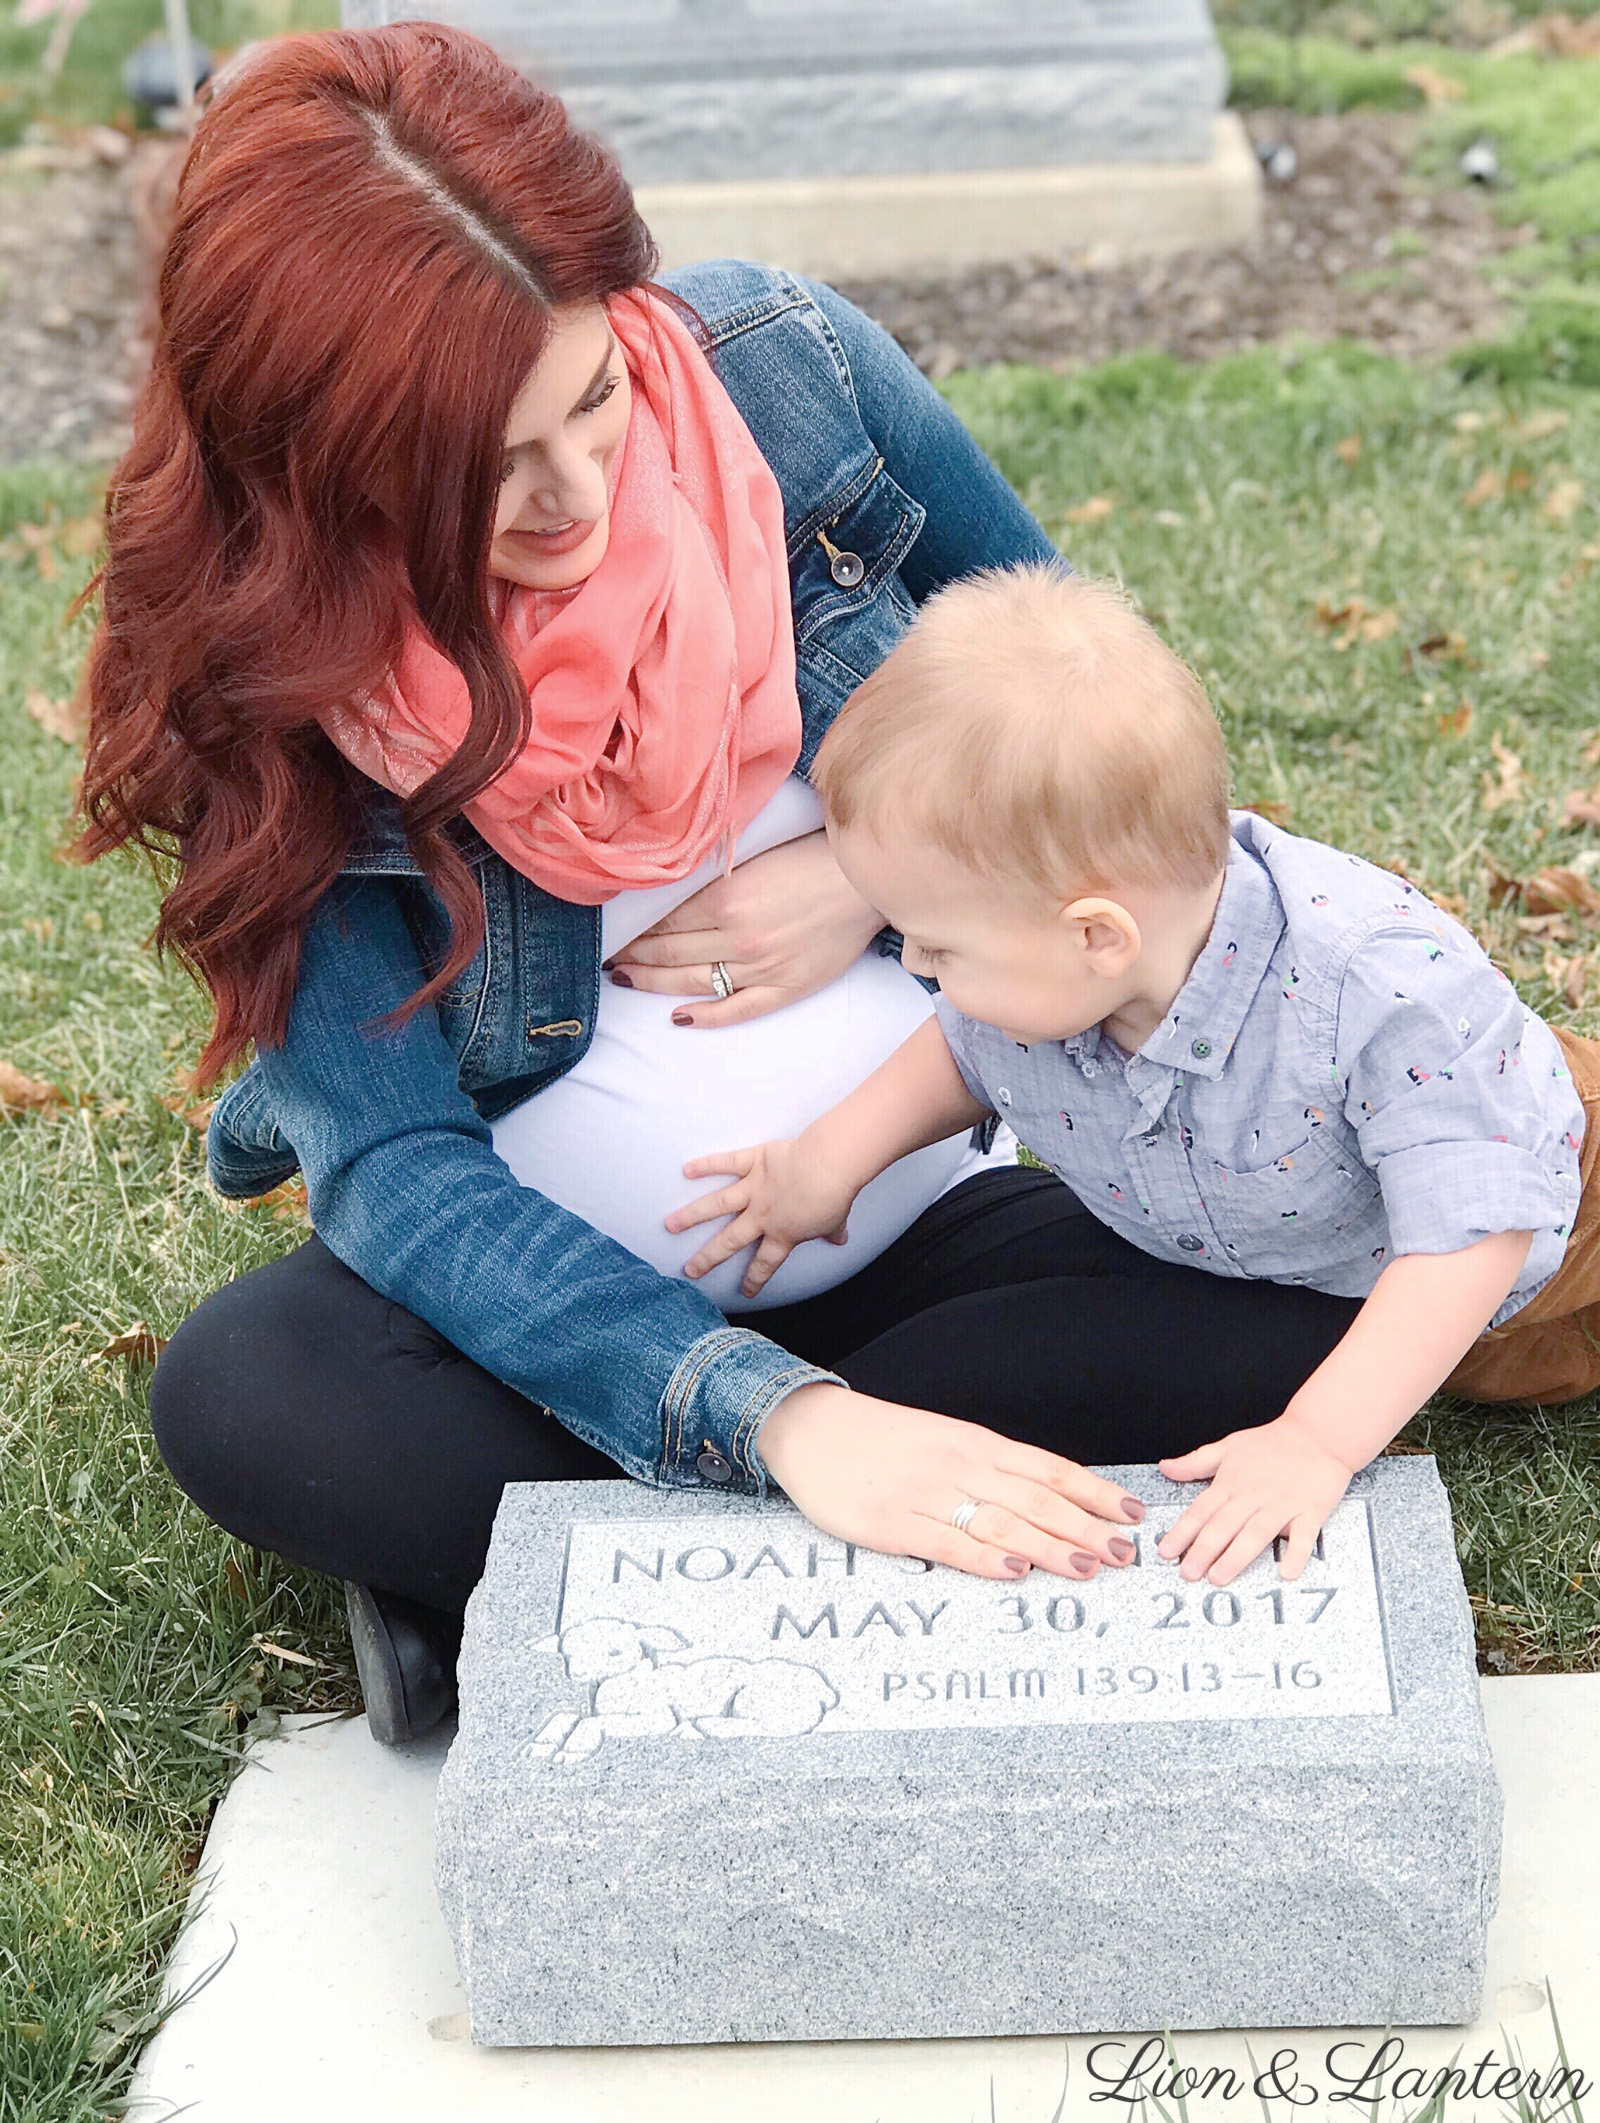 Dear Noah: Our Baby In Heaven at LionAndLantern.com. Miscarriage, pregnancy loss, infant loss, Christian mom, pregnancy and infant loss, miscarriage anniversary, miscarriage awareness